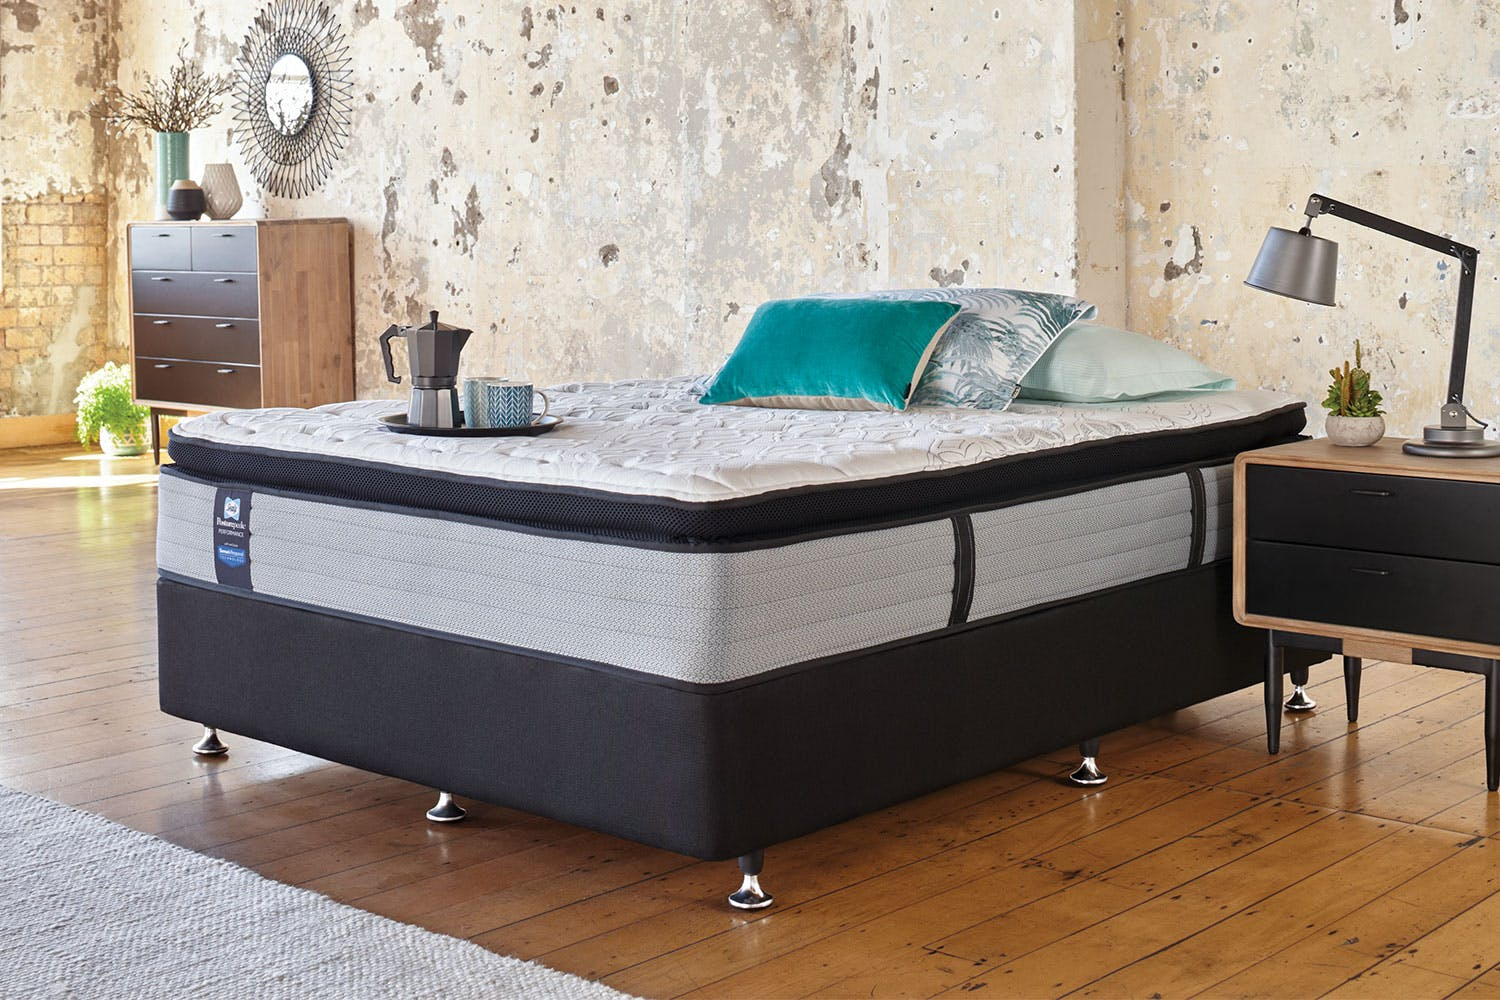 Mason Medium Queen Bed By Sealy Posturepedic Harvey Norman New Zealand